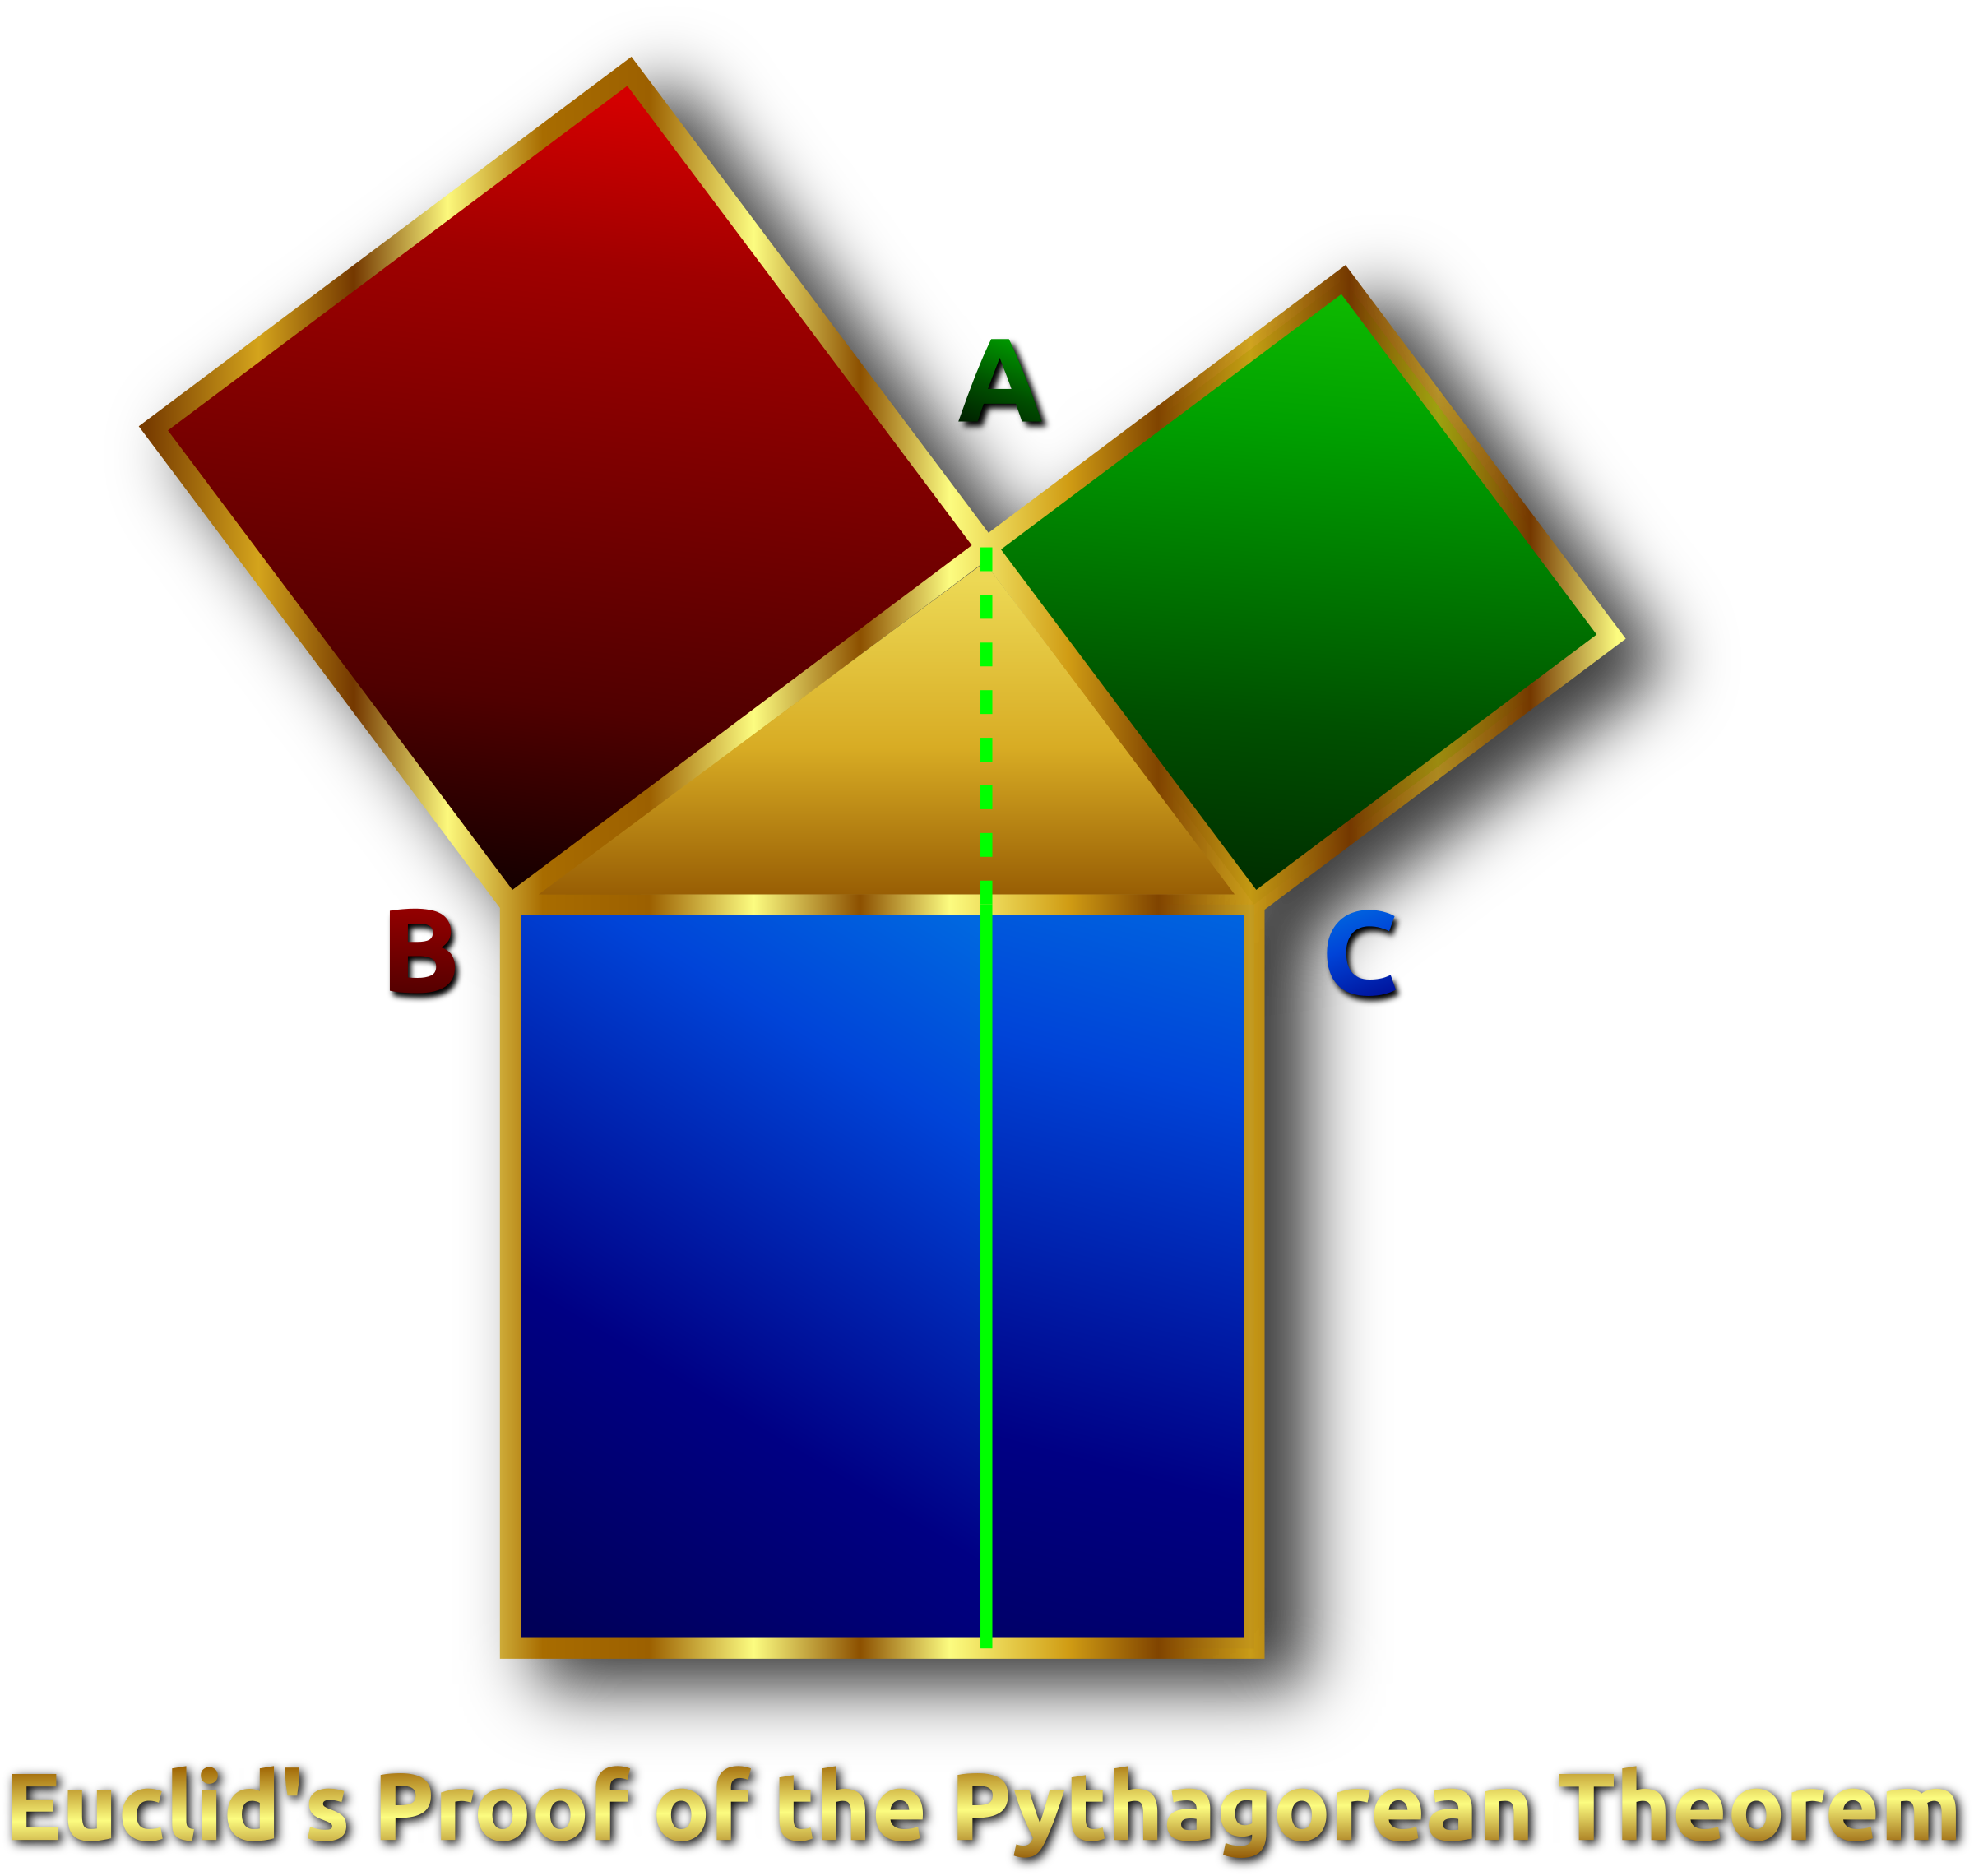 Euclid's Pythagorean Theorem Proof Remix by Merlin2525